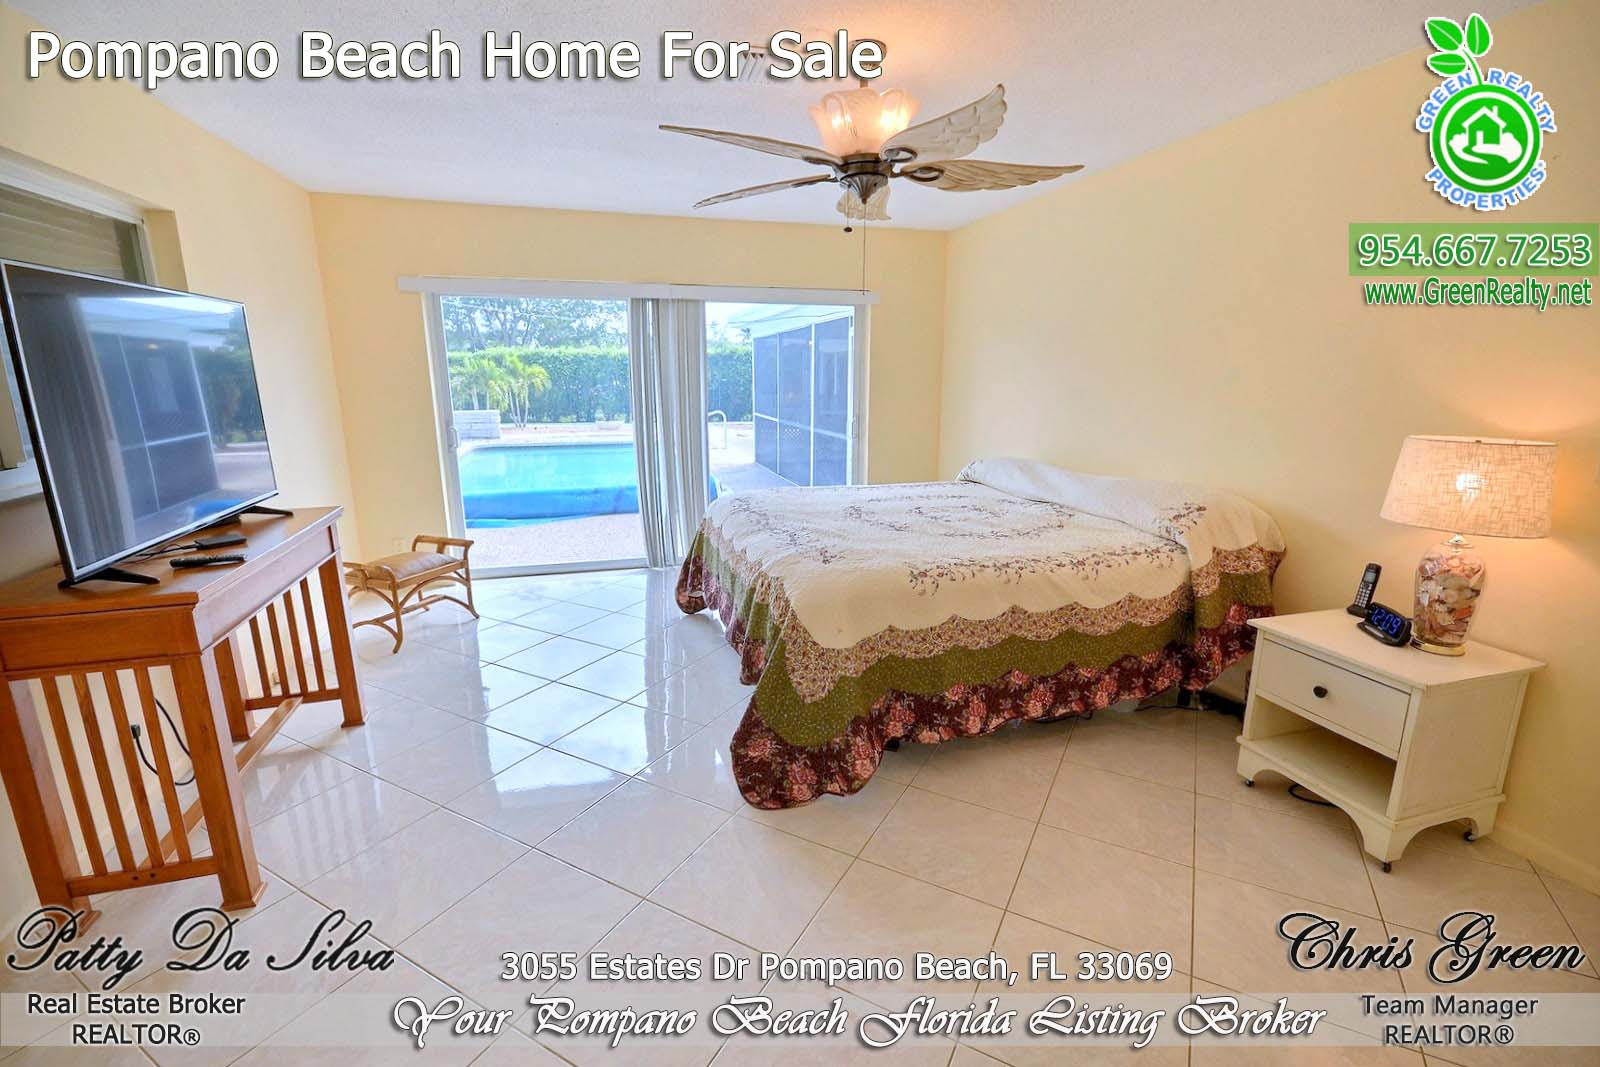 18 Patty Da Silva SELLS Pompano Beach Homes (4)